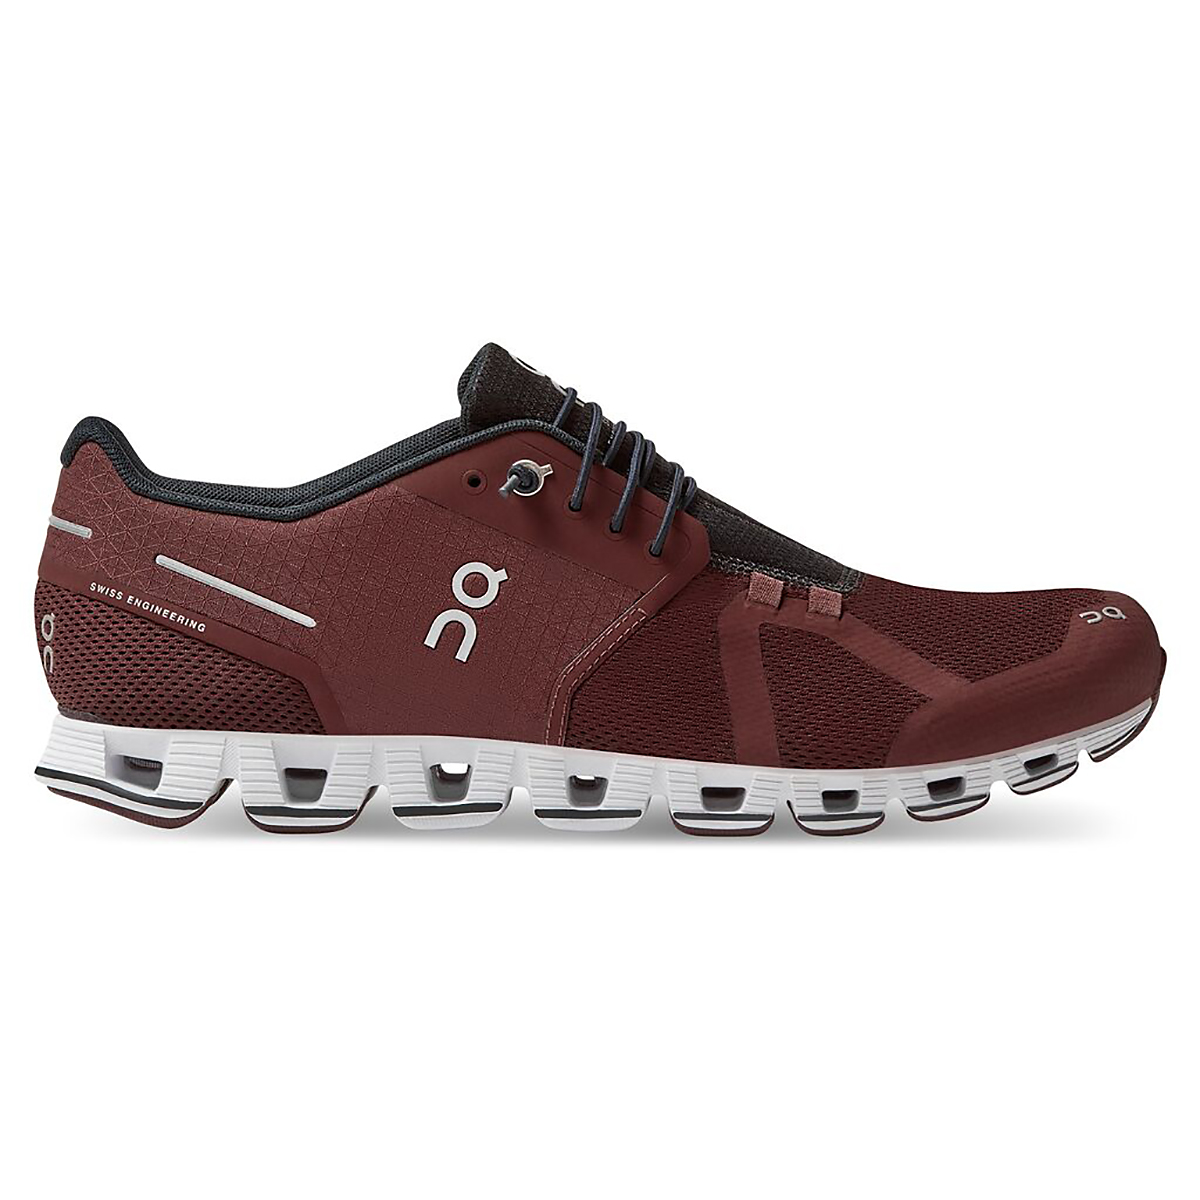 Men's On Cloud Lifestyle Shoe - Color: Ox/White - Size: 7 - Width: Regular, Ox/White, large, image 1